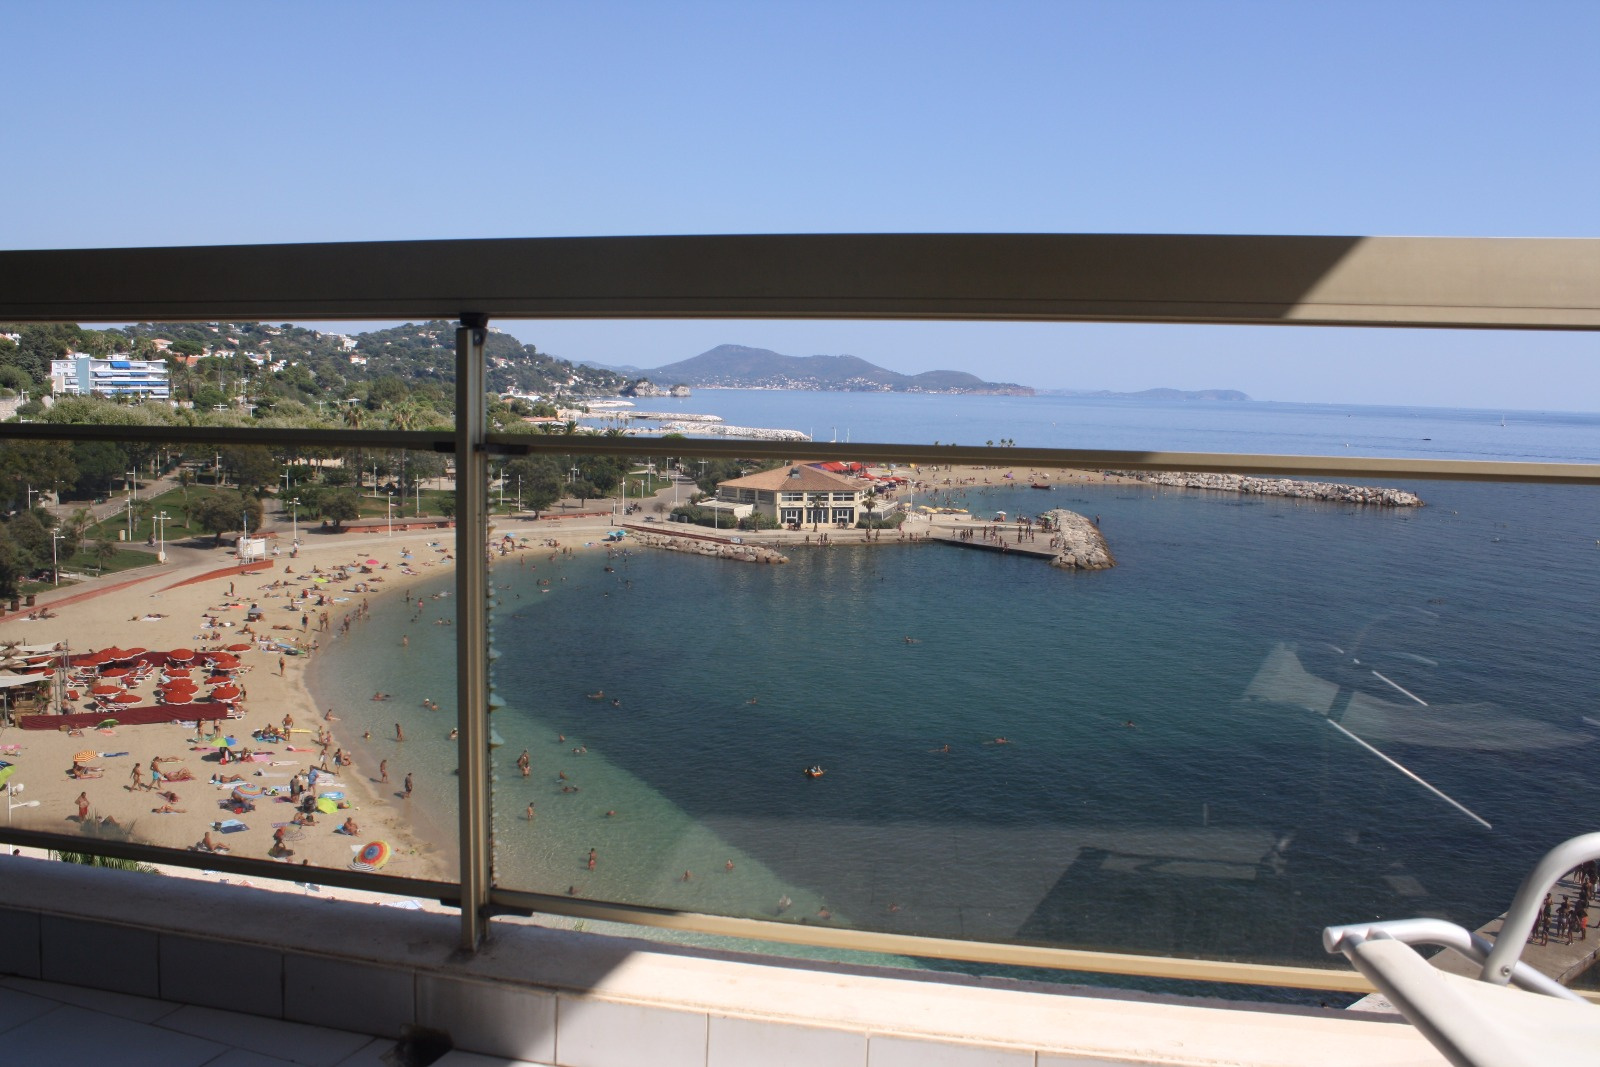 Location de vacances Appartement Toulon (83100)